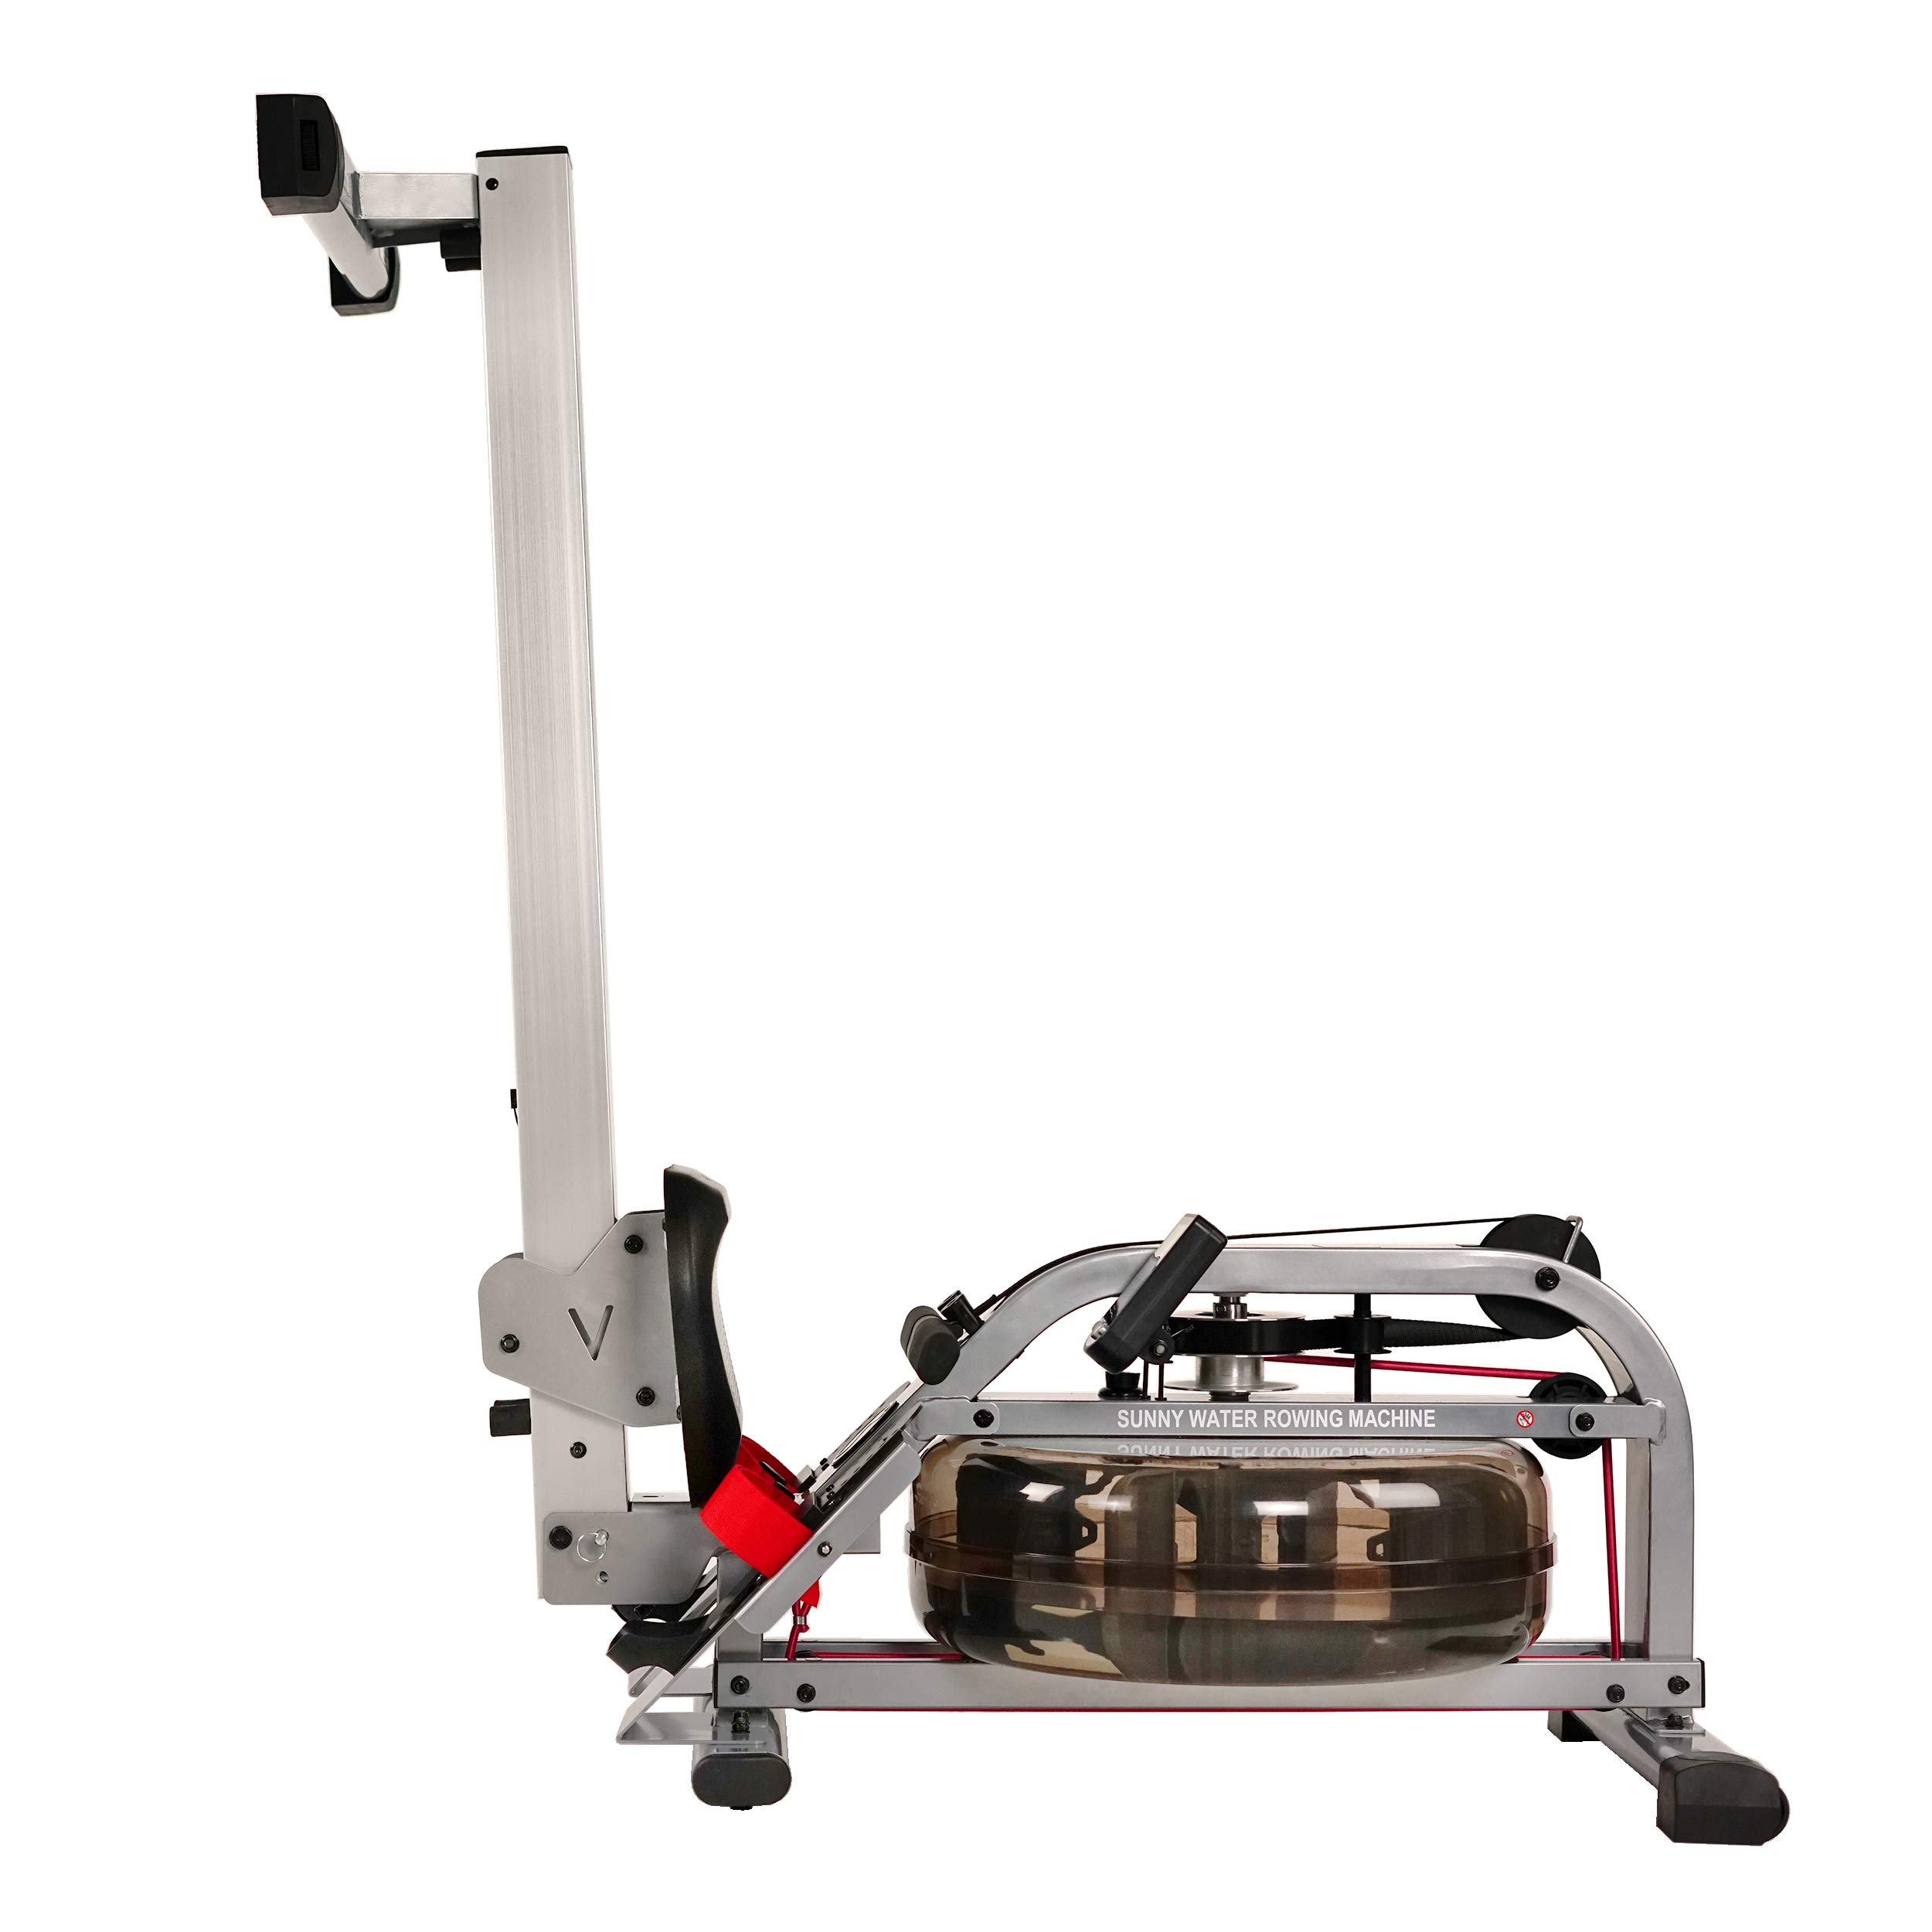 Sunny Health & Fitness Water Rowing Machine Rower w/LCD Monitor - SF-RW5866 by Sunny Health & Fitness (Image #10)